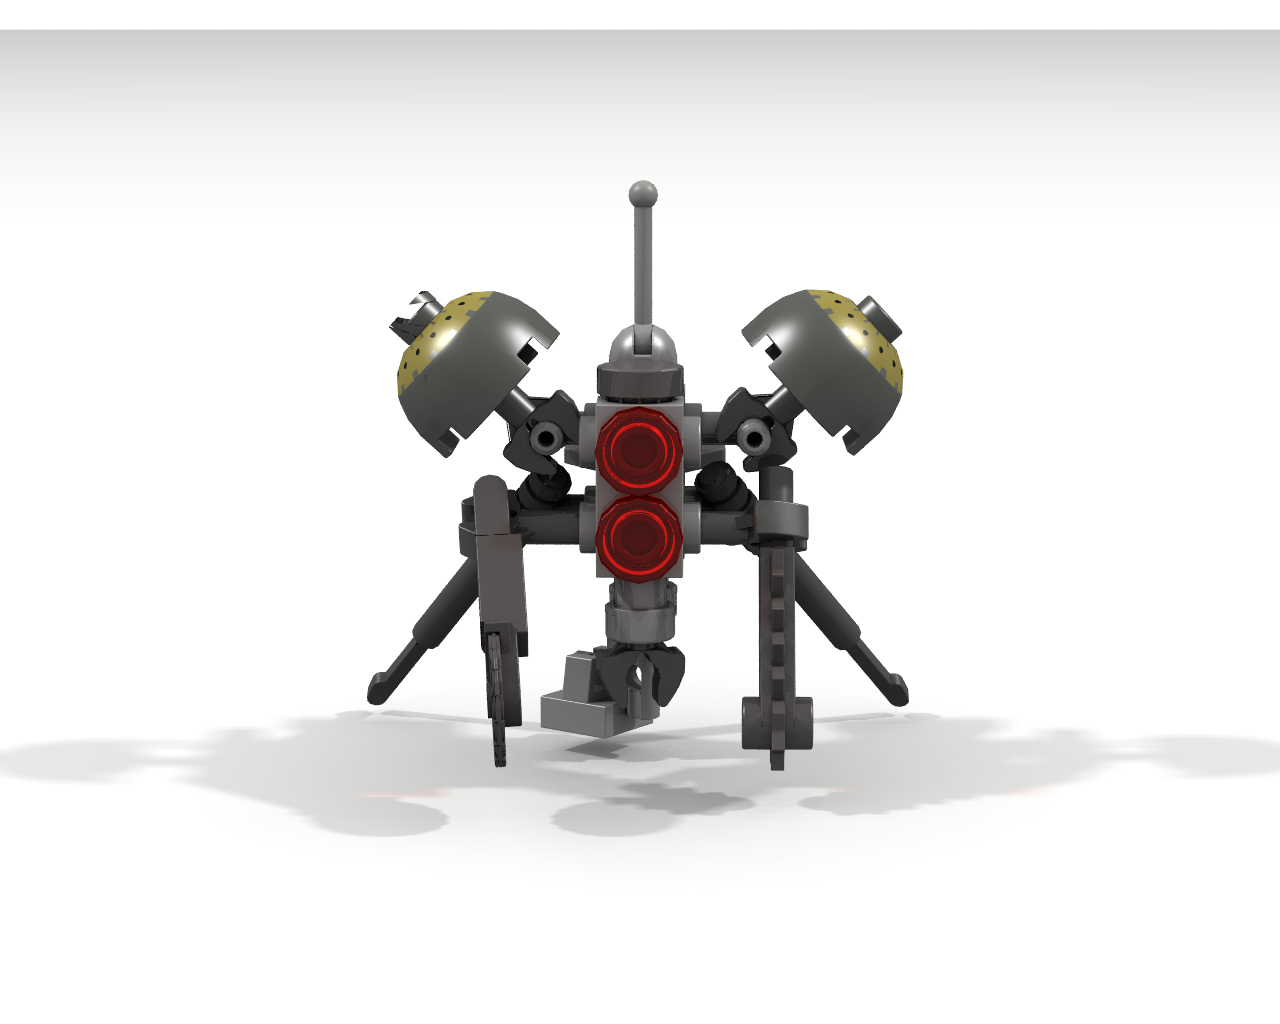 buzzdroid2.png